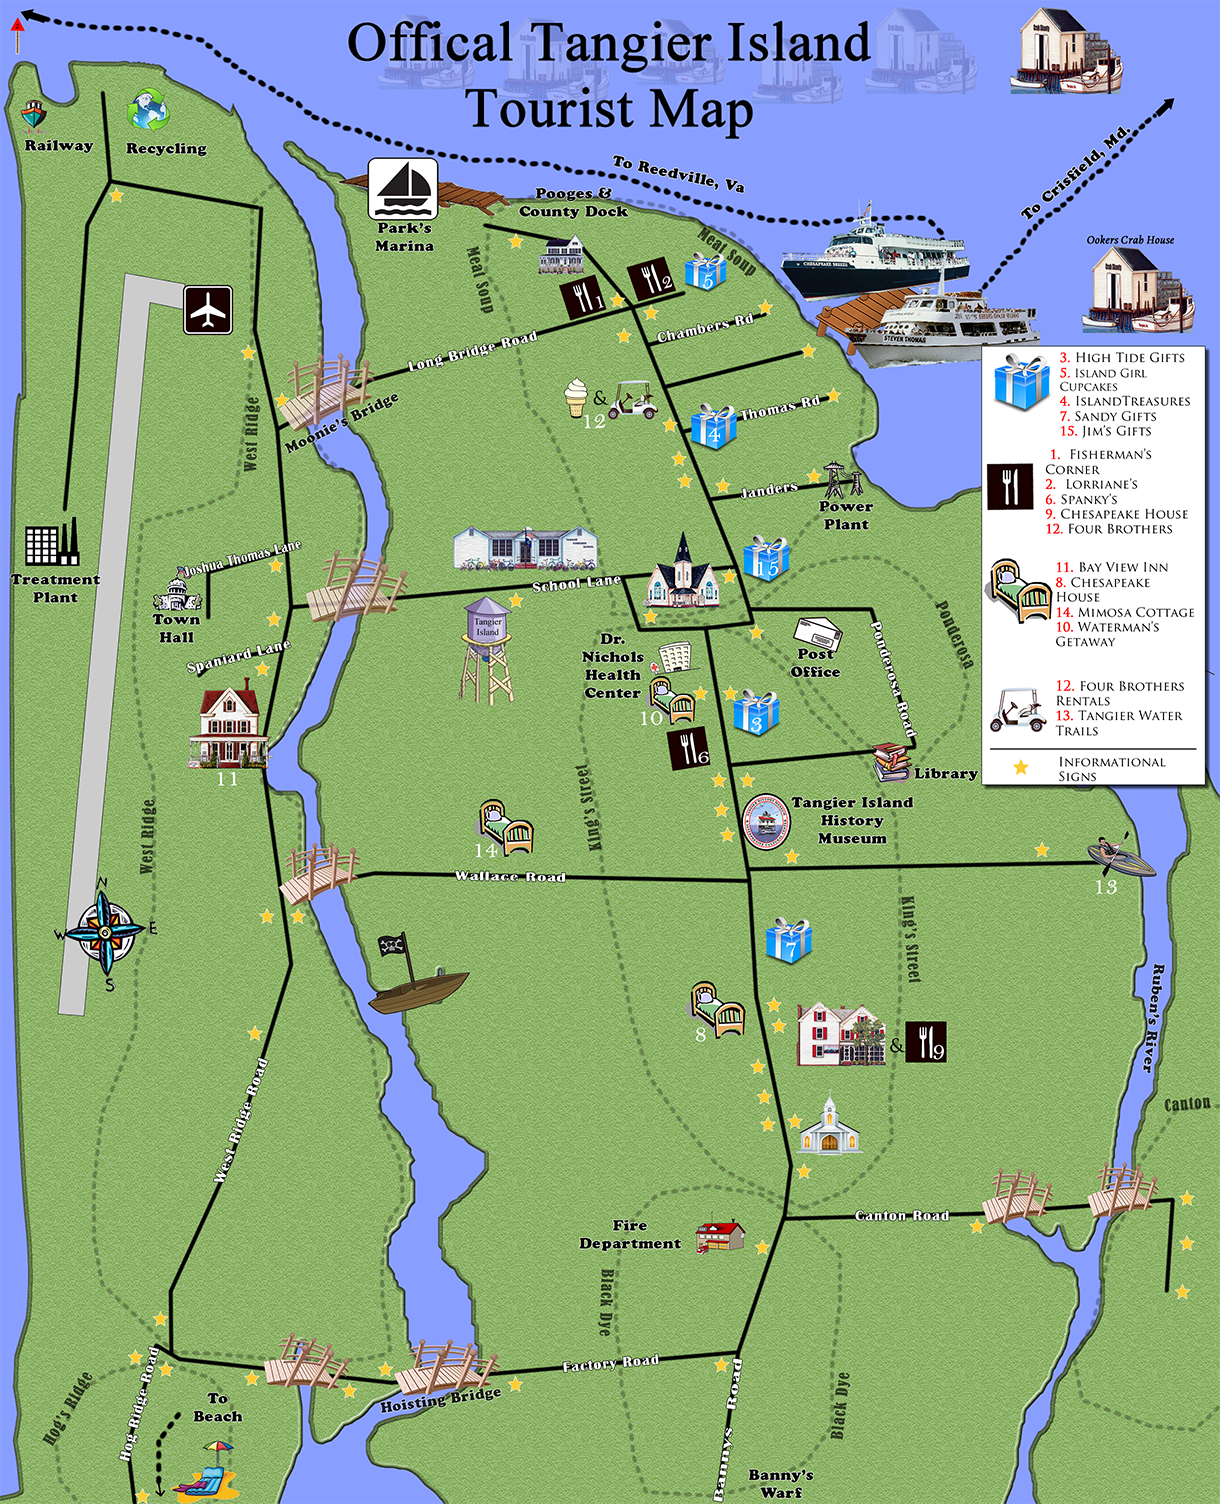 Click here to view tangier island tourist map